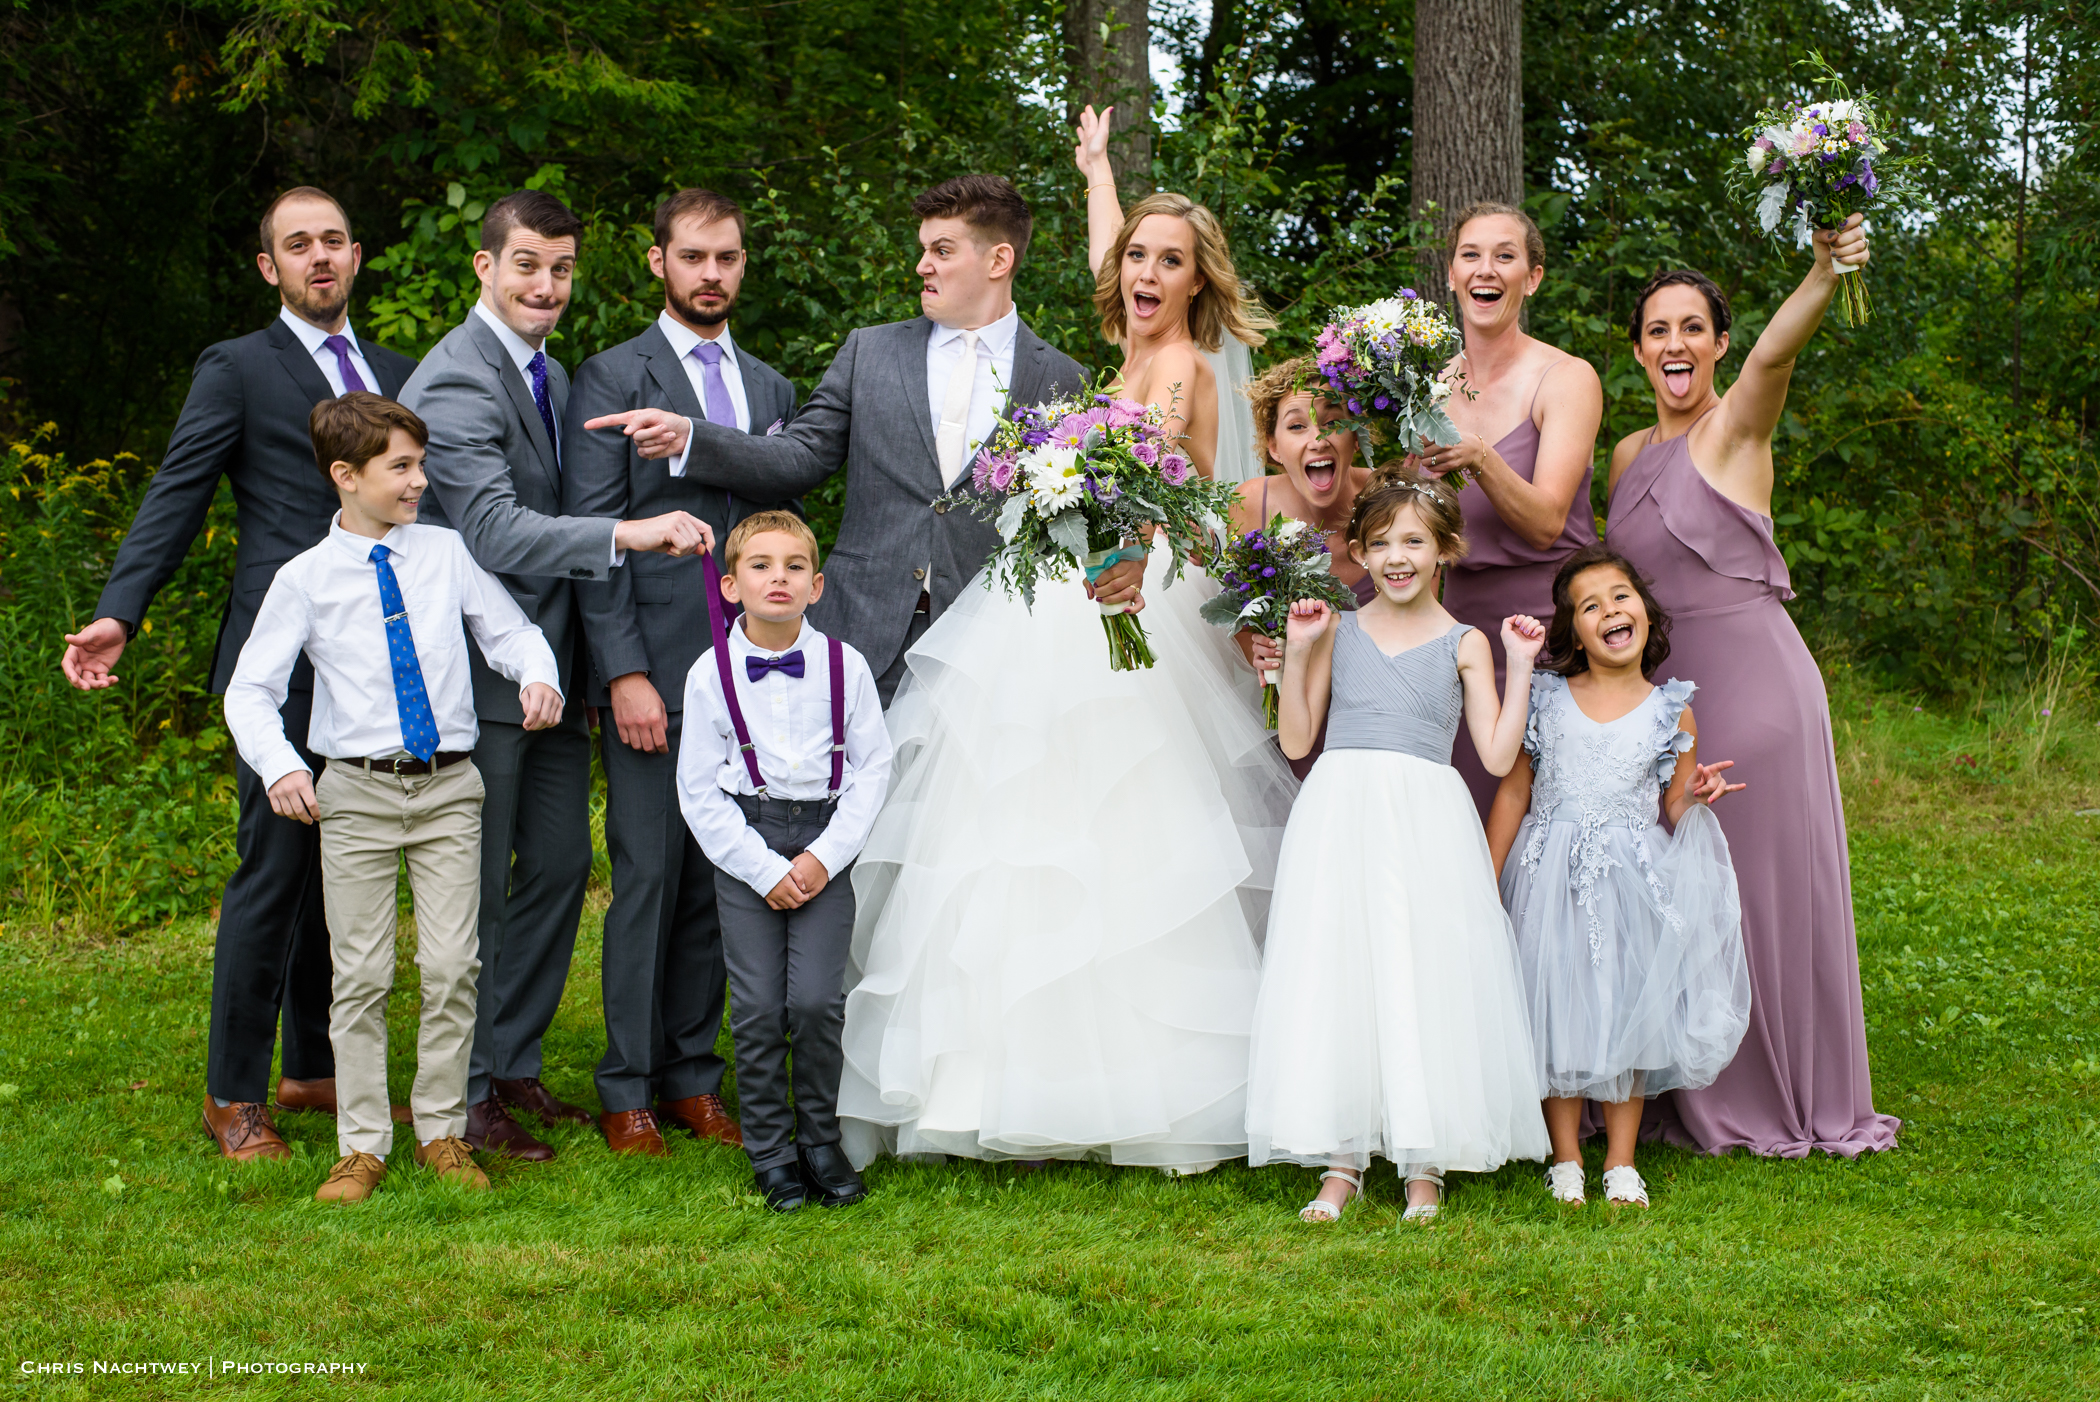 artistic-wedding-photographer-granby-connecticut-chris-nachtwey-photography-2018-26.jpg